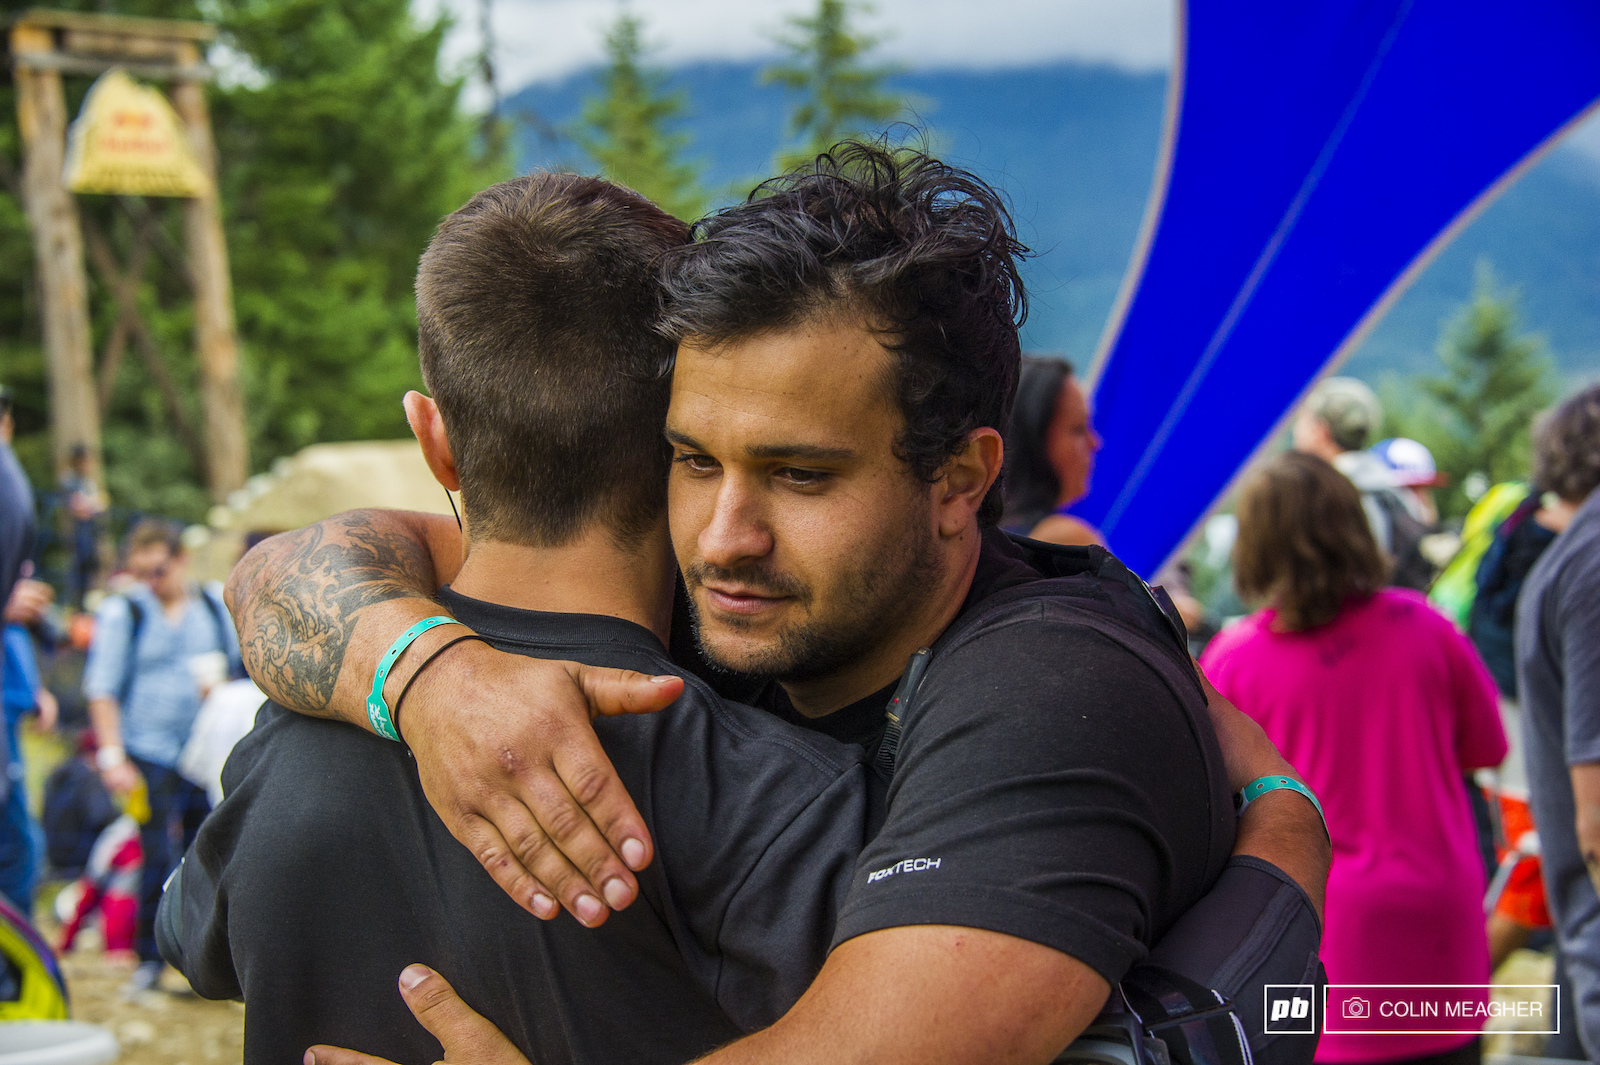 Pre-comp comraderie Anthony Messerie and Yannick Grannieri